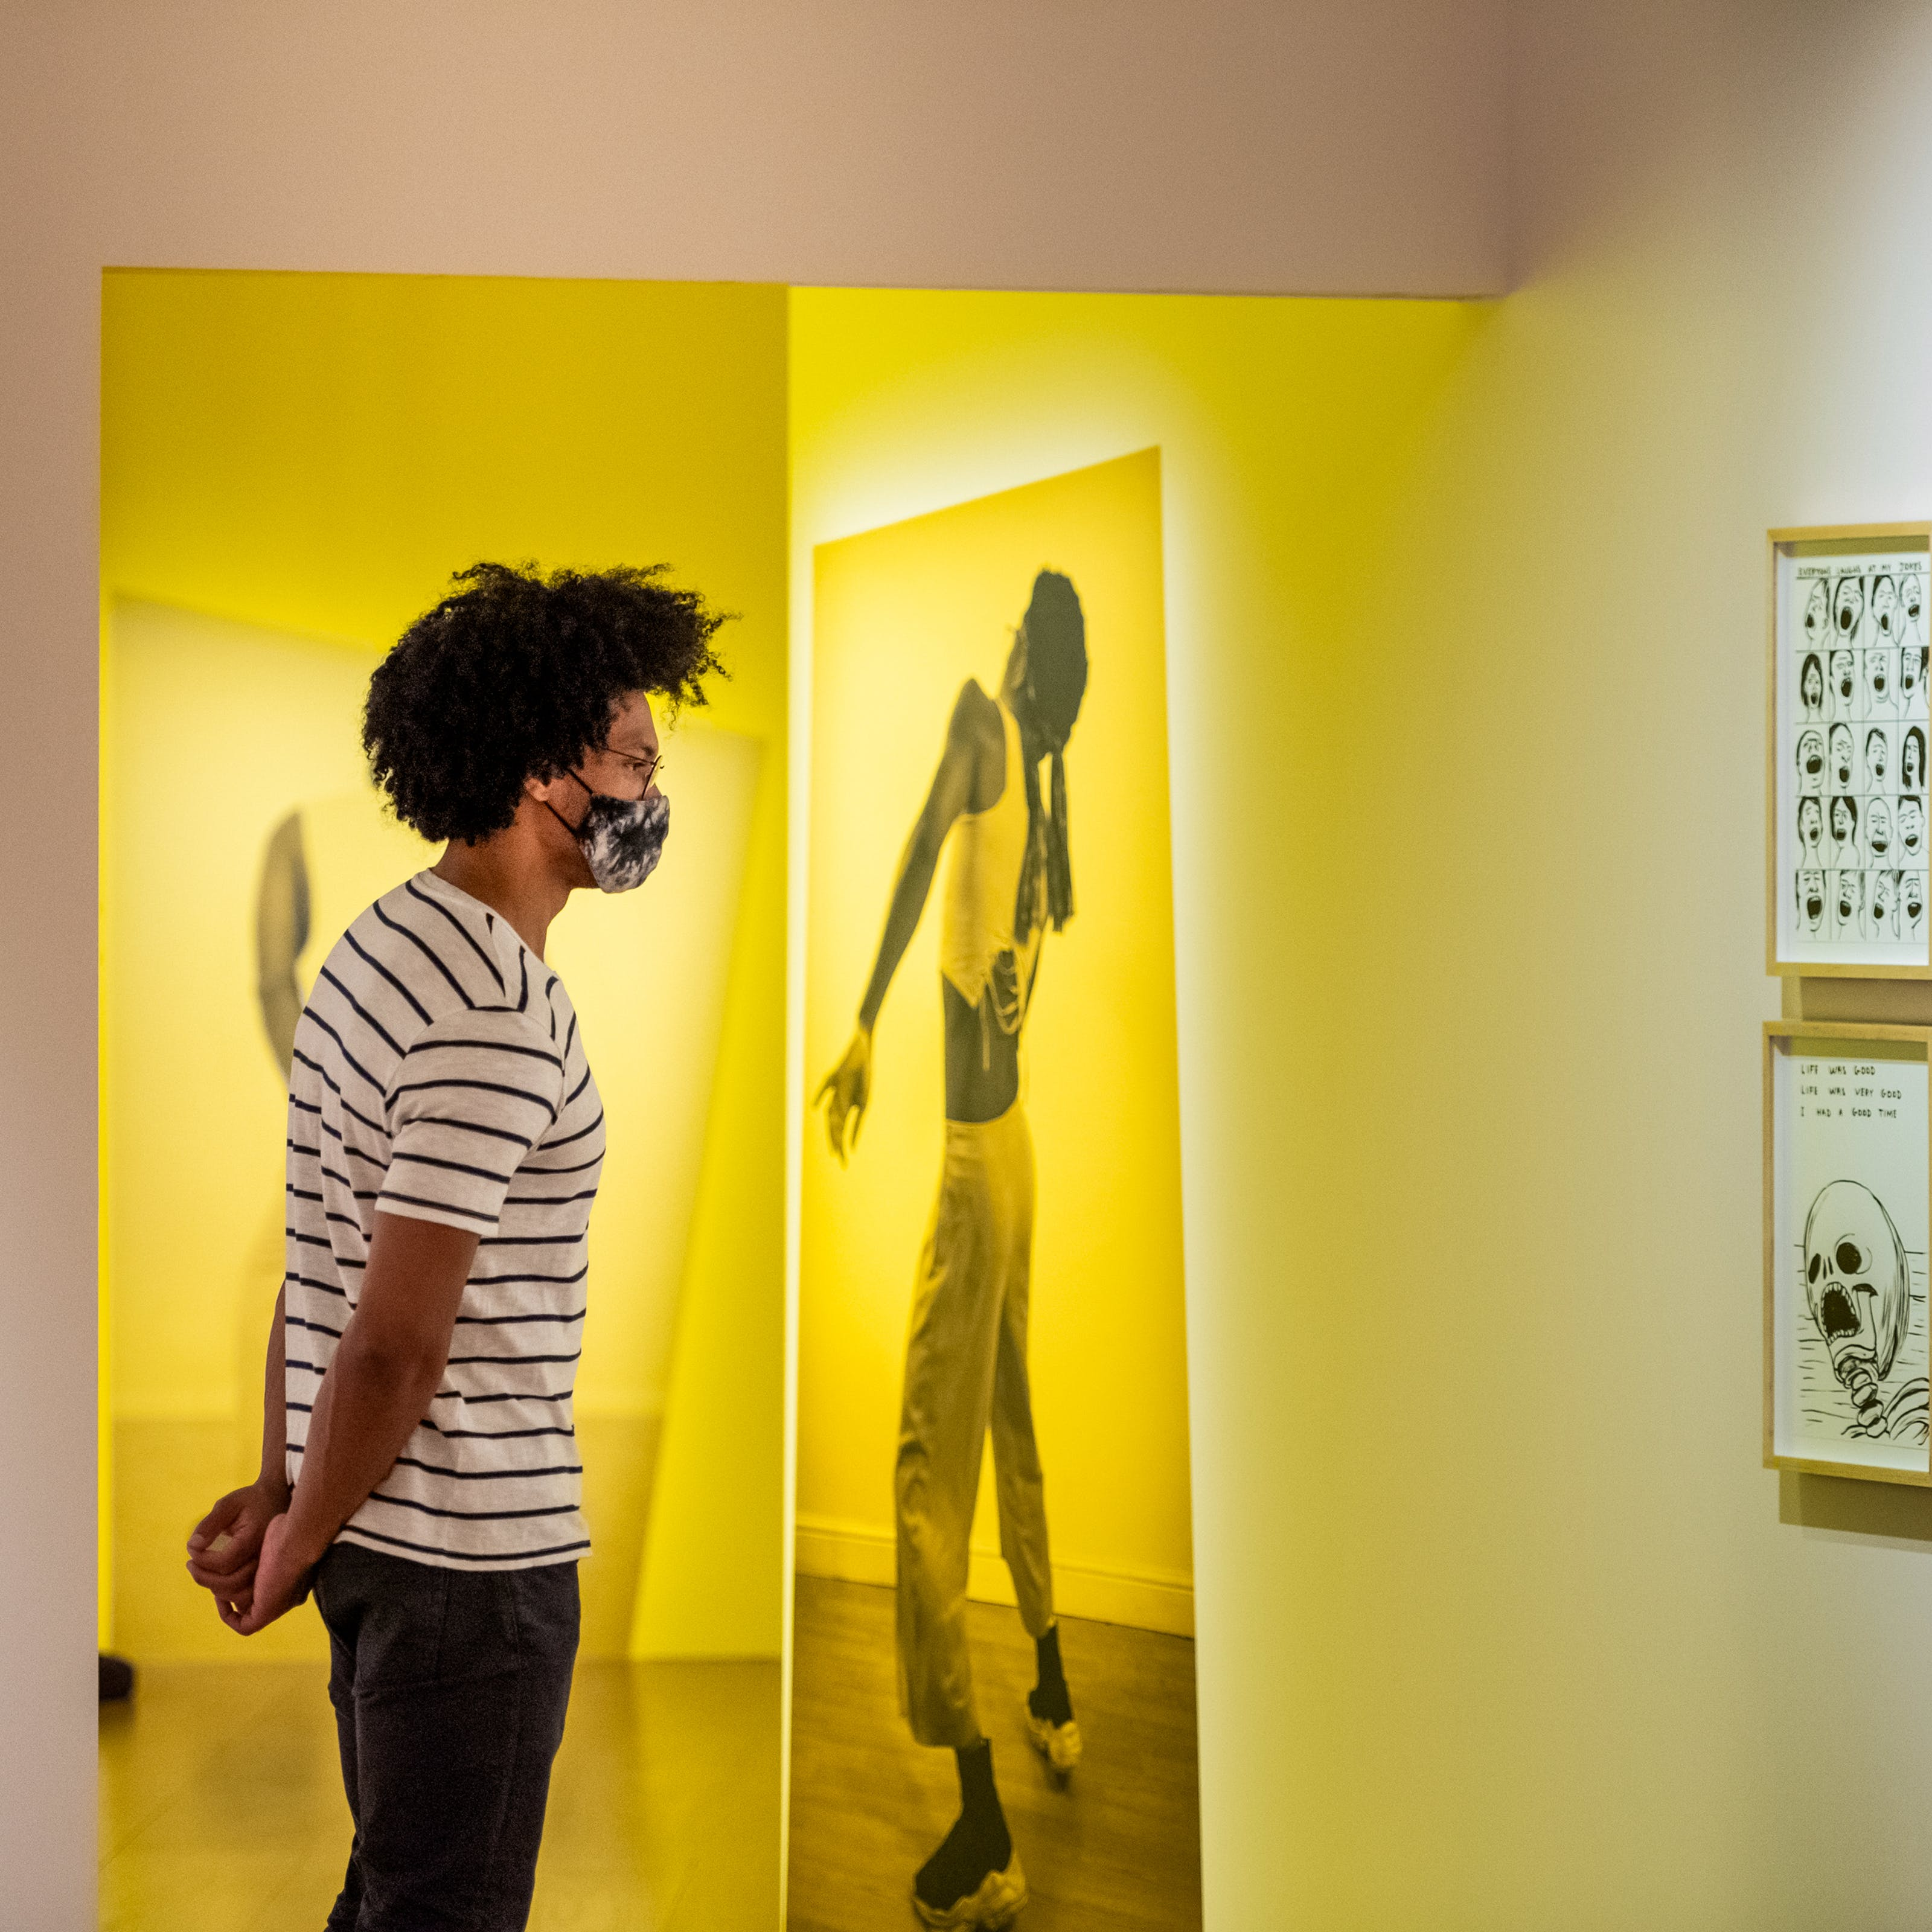 Photograph of a man wearing a face mask exploring an exhibition gallery space. He is wearing a white t-shirt with thin black horizontal stripes and jeans. His hands are clasped behind his back. The gallery around him has a warm yellow and pink tone. Directly in front of him is a large photographic print of a person in full length, frozen in a performative pose. Hung on the wall to the right is a cluster of 6 framed pen and ink drawings, 3 across by 2 high, showing in one a skull, in another a bird cage and in another a series of hands.